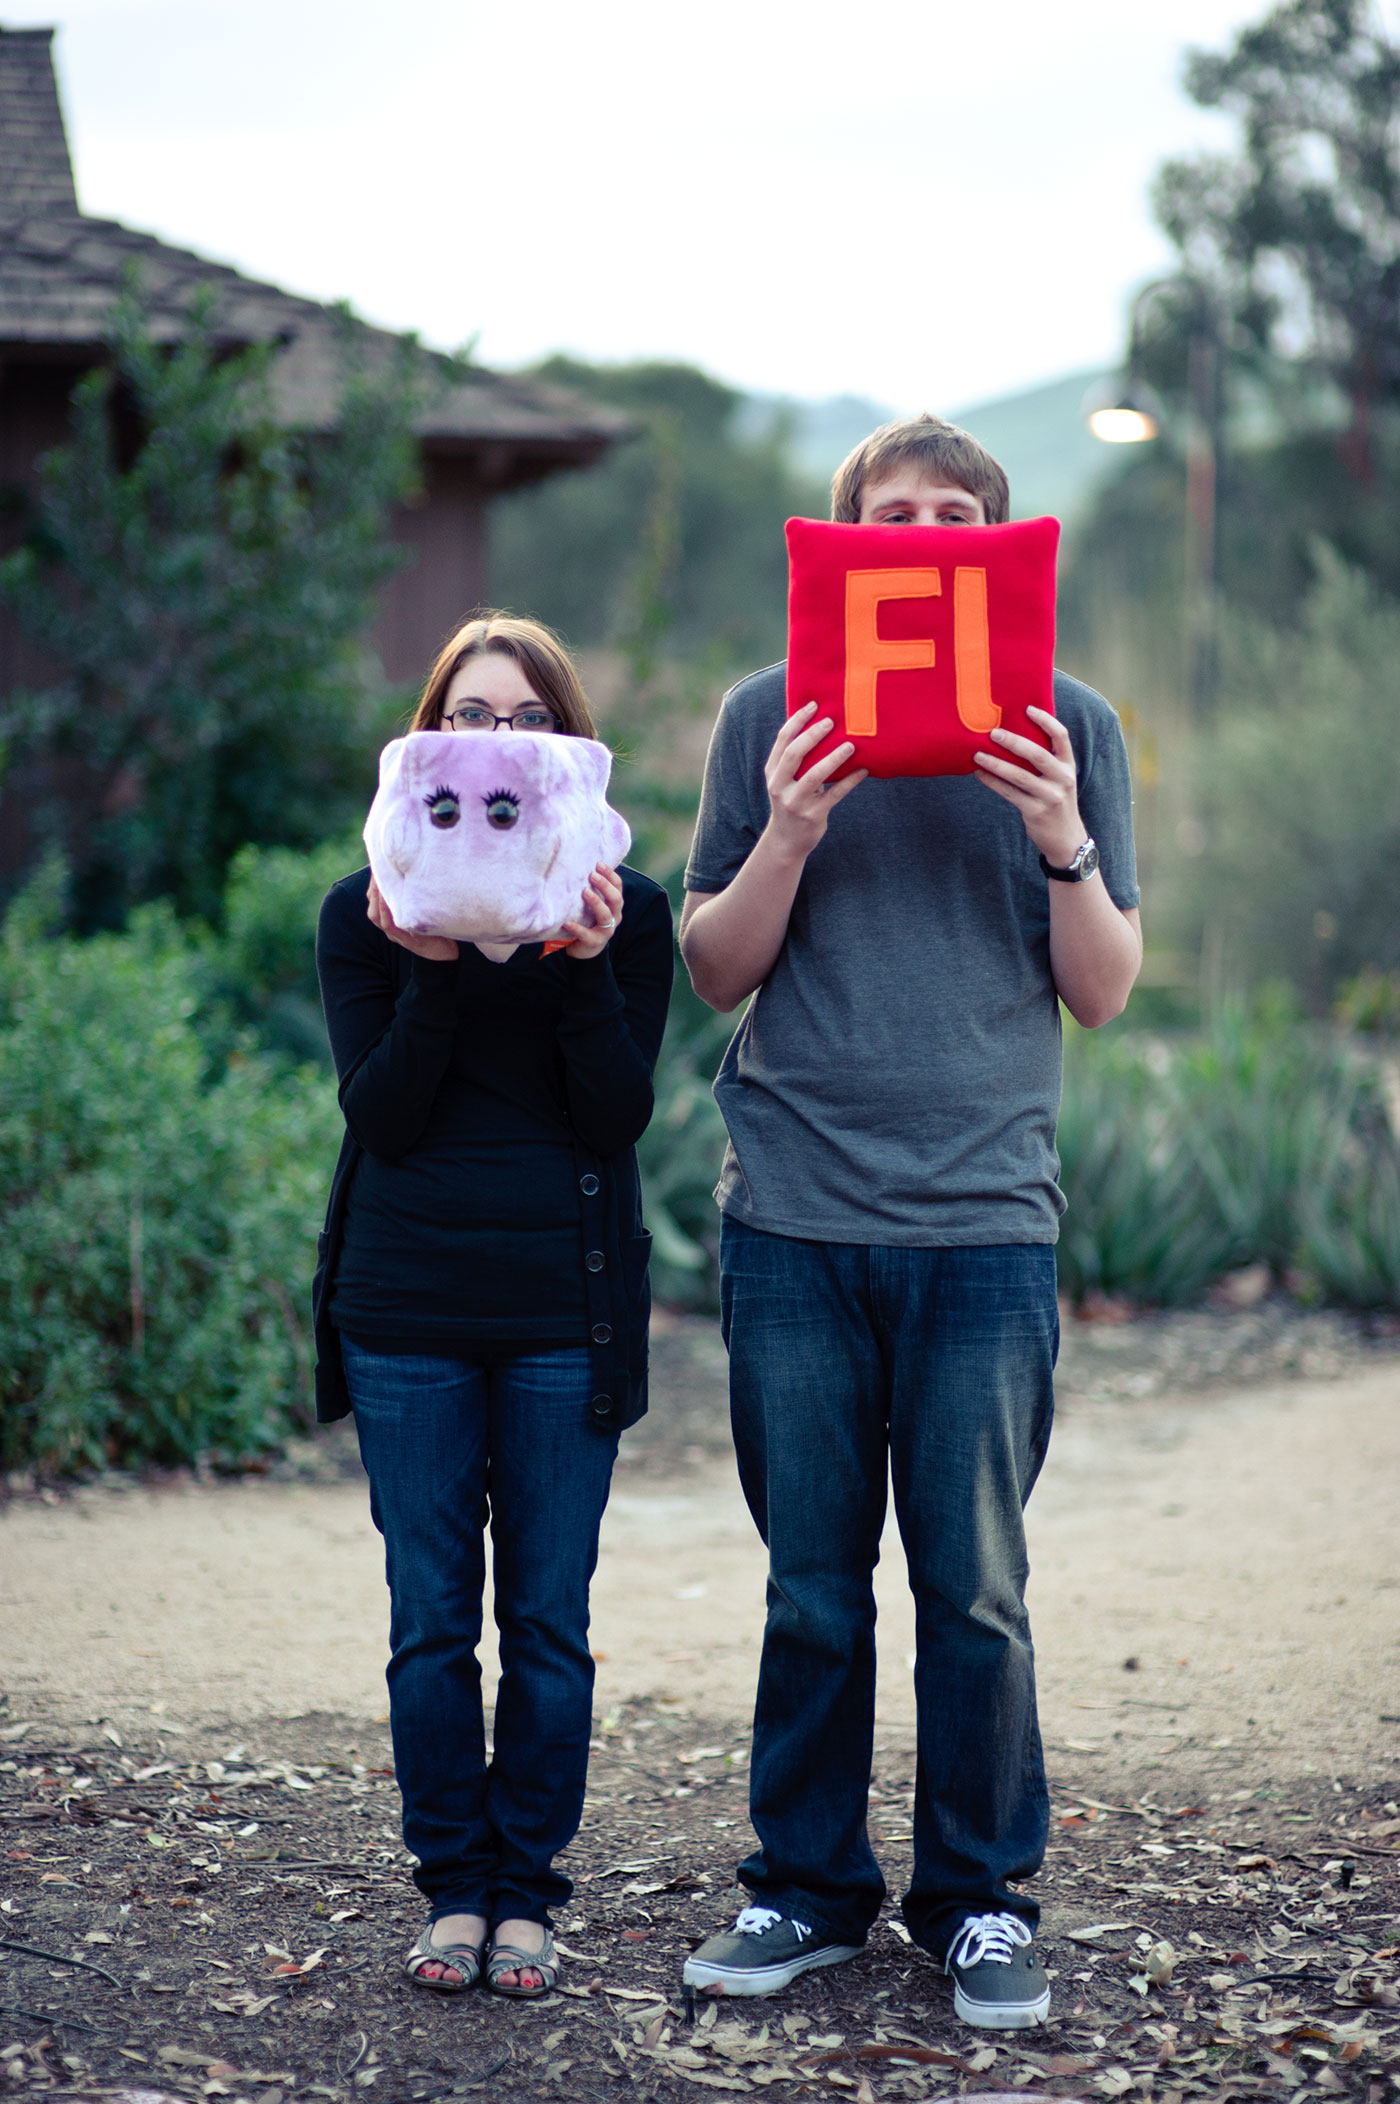 Photo of myself holding a pillow with the Flash logo on it and my then-fianceé (now-wife) holding a pillow in the shape of the Epstein–Barr virus